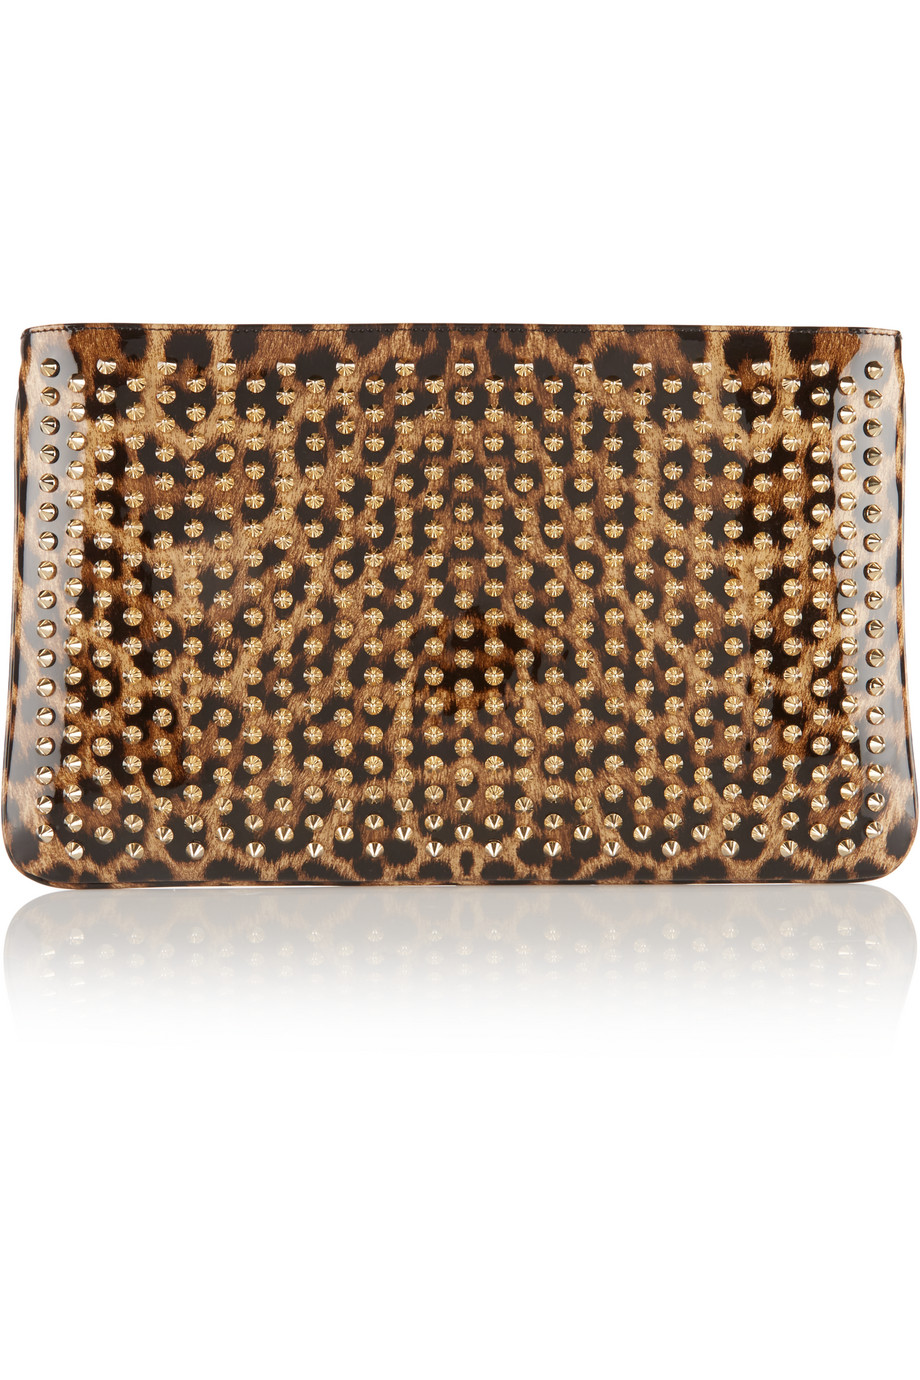 Christian Louboutin Loubiposh Spiked Leopard-Print Patent-Leather Clutch, Leopard Print, Women's